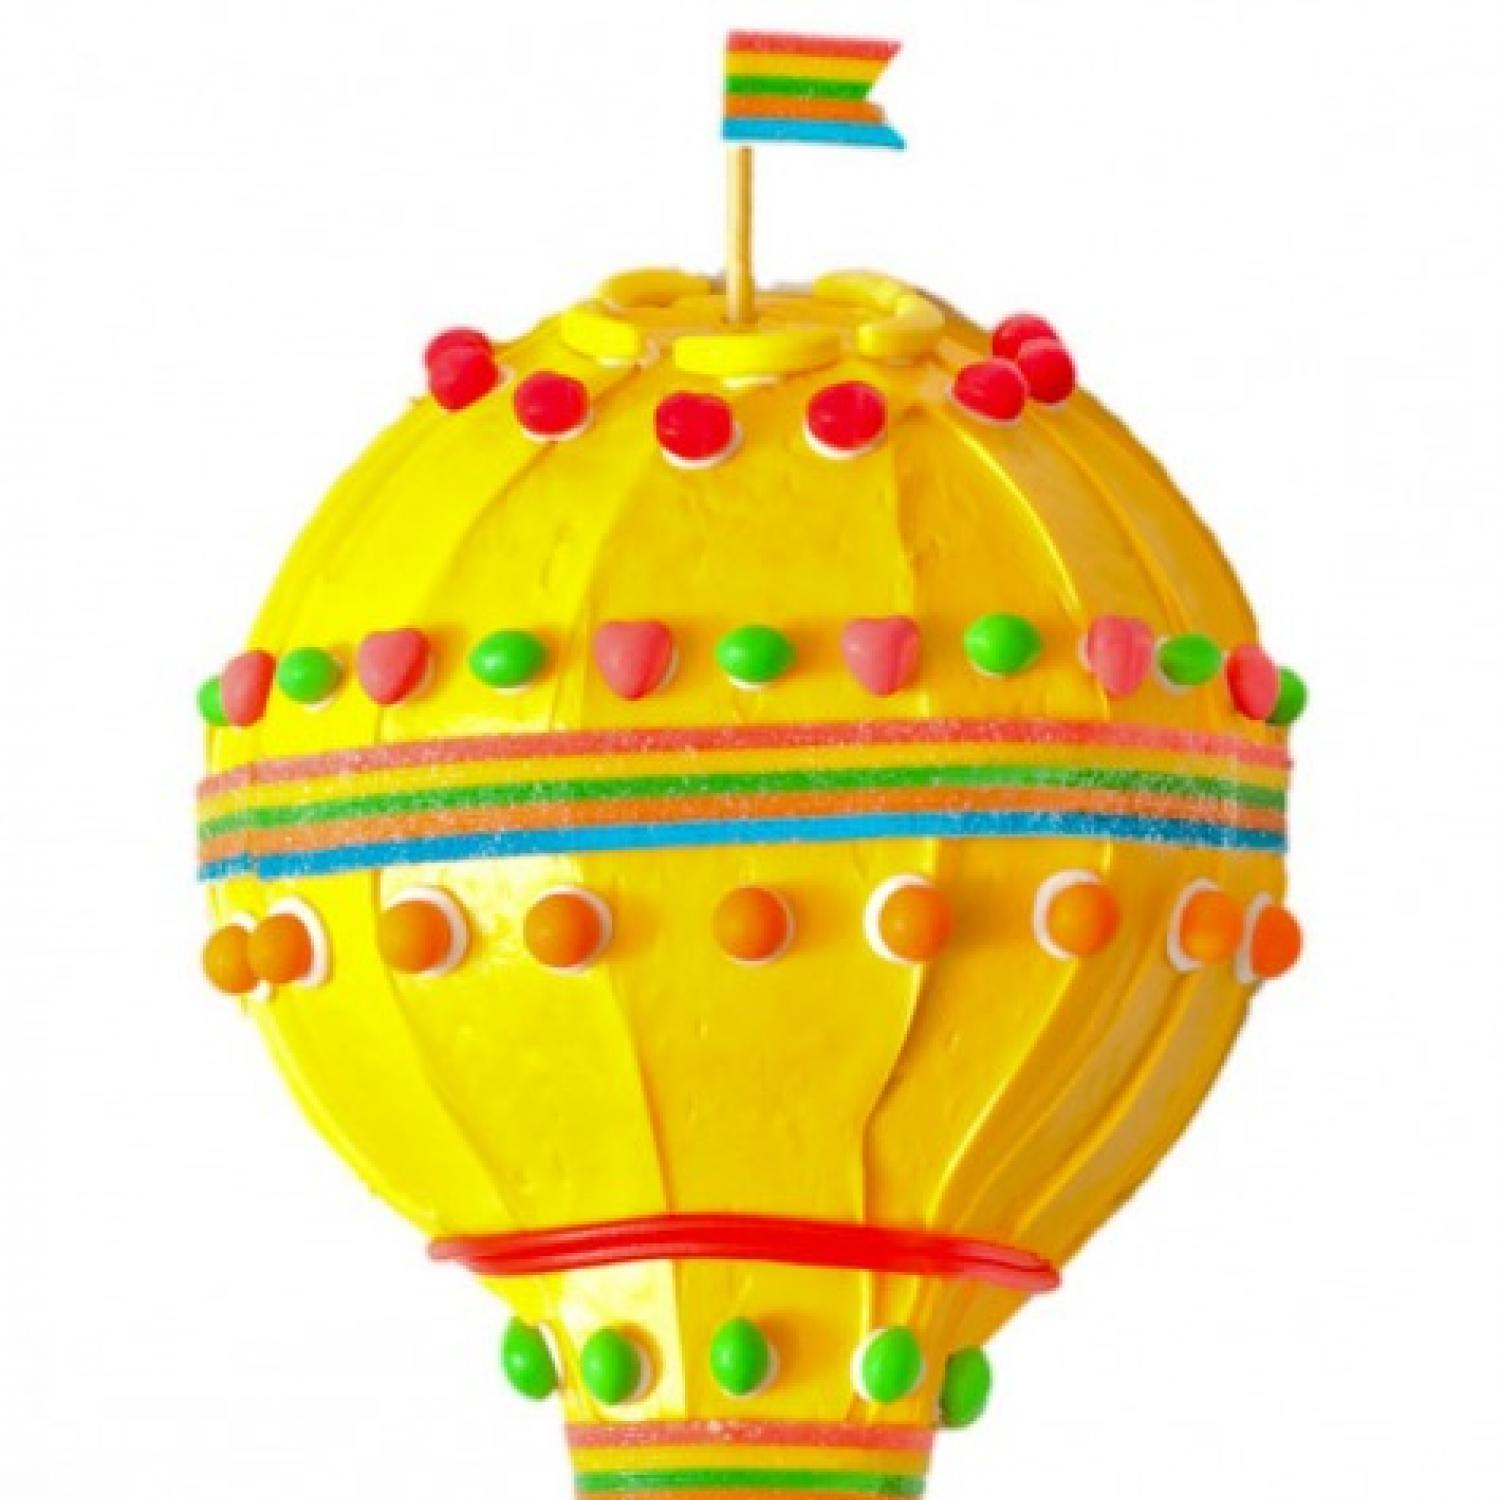 Cake Design Ballarat : Hot Air Balloon Birthday Cake Design Parenting